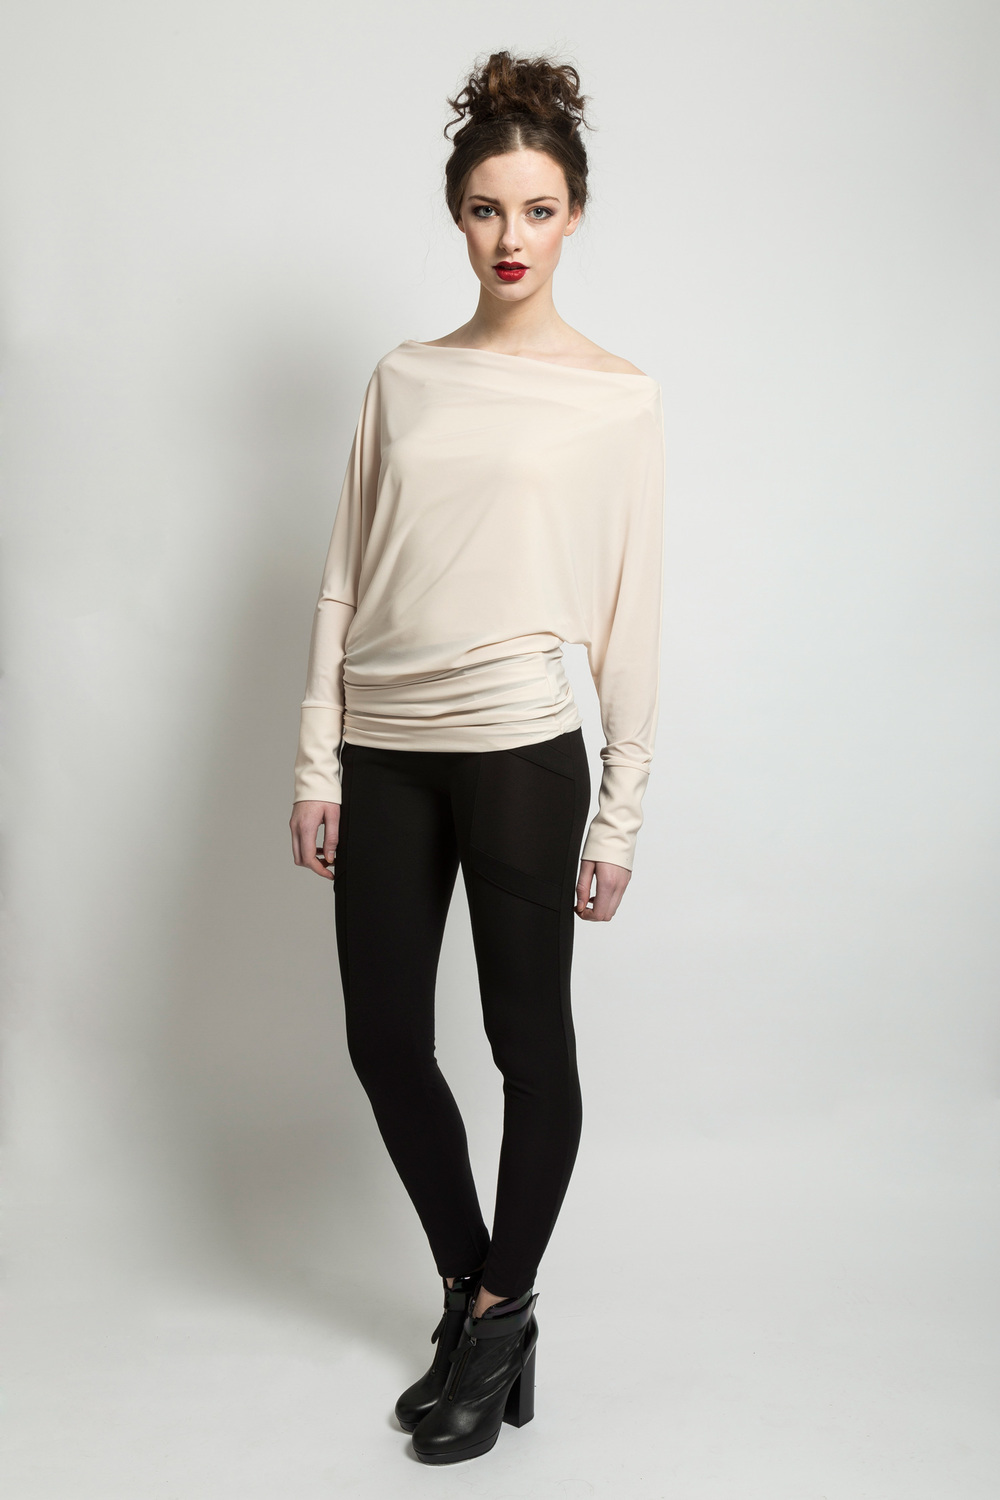 AW14-Cream-Jersey-Long-Sleeve-Top.jpg